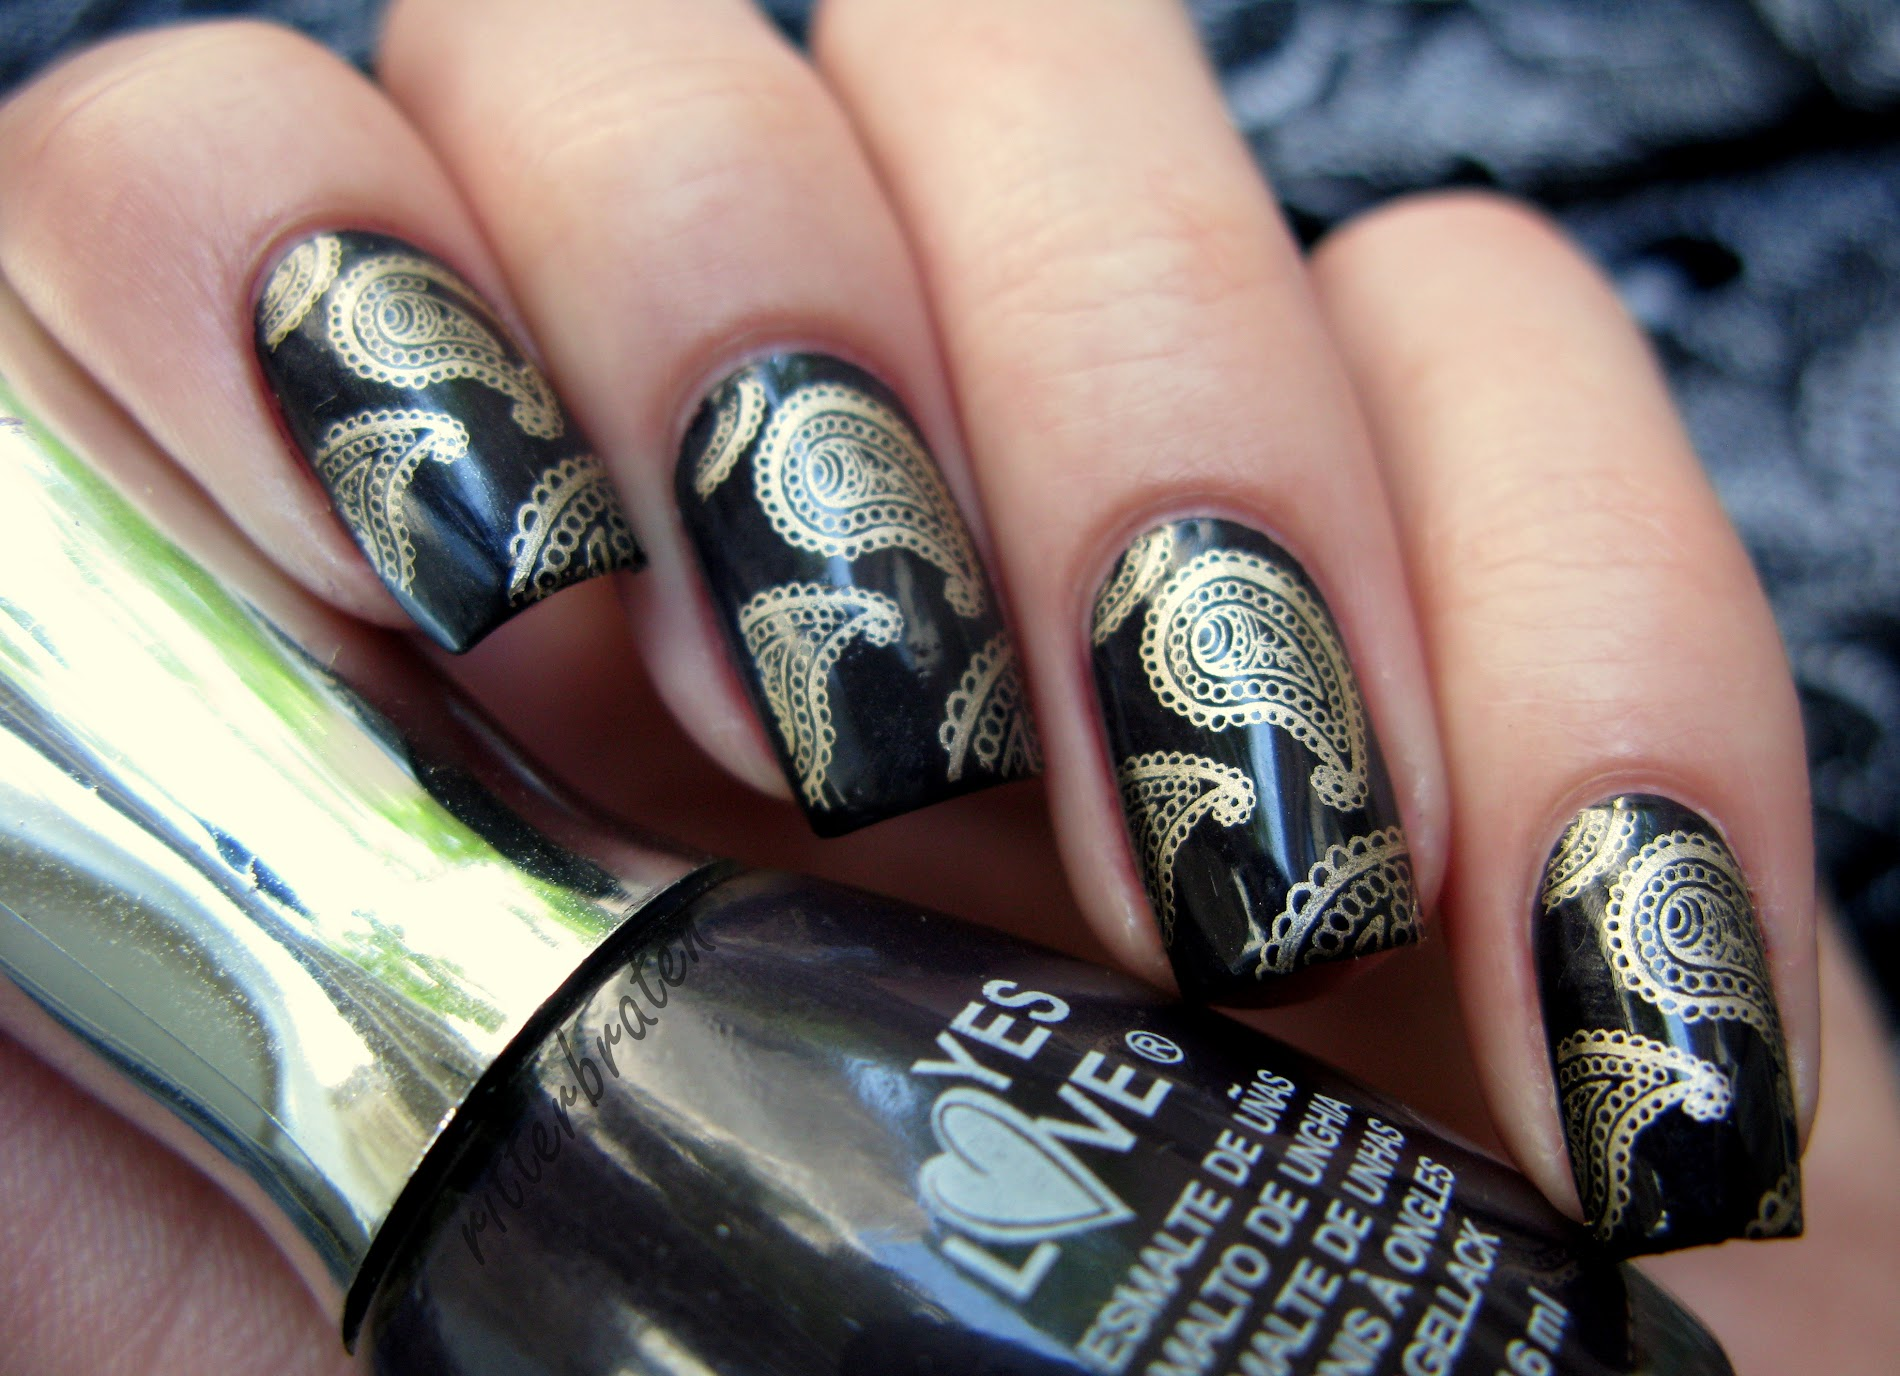 BM-315 paisley pattern nails cucumber